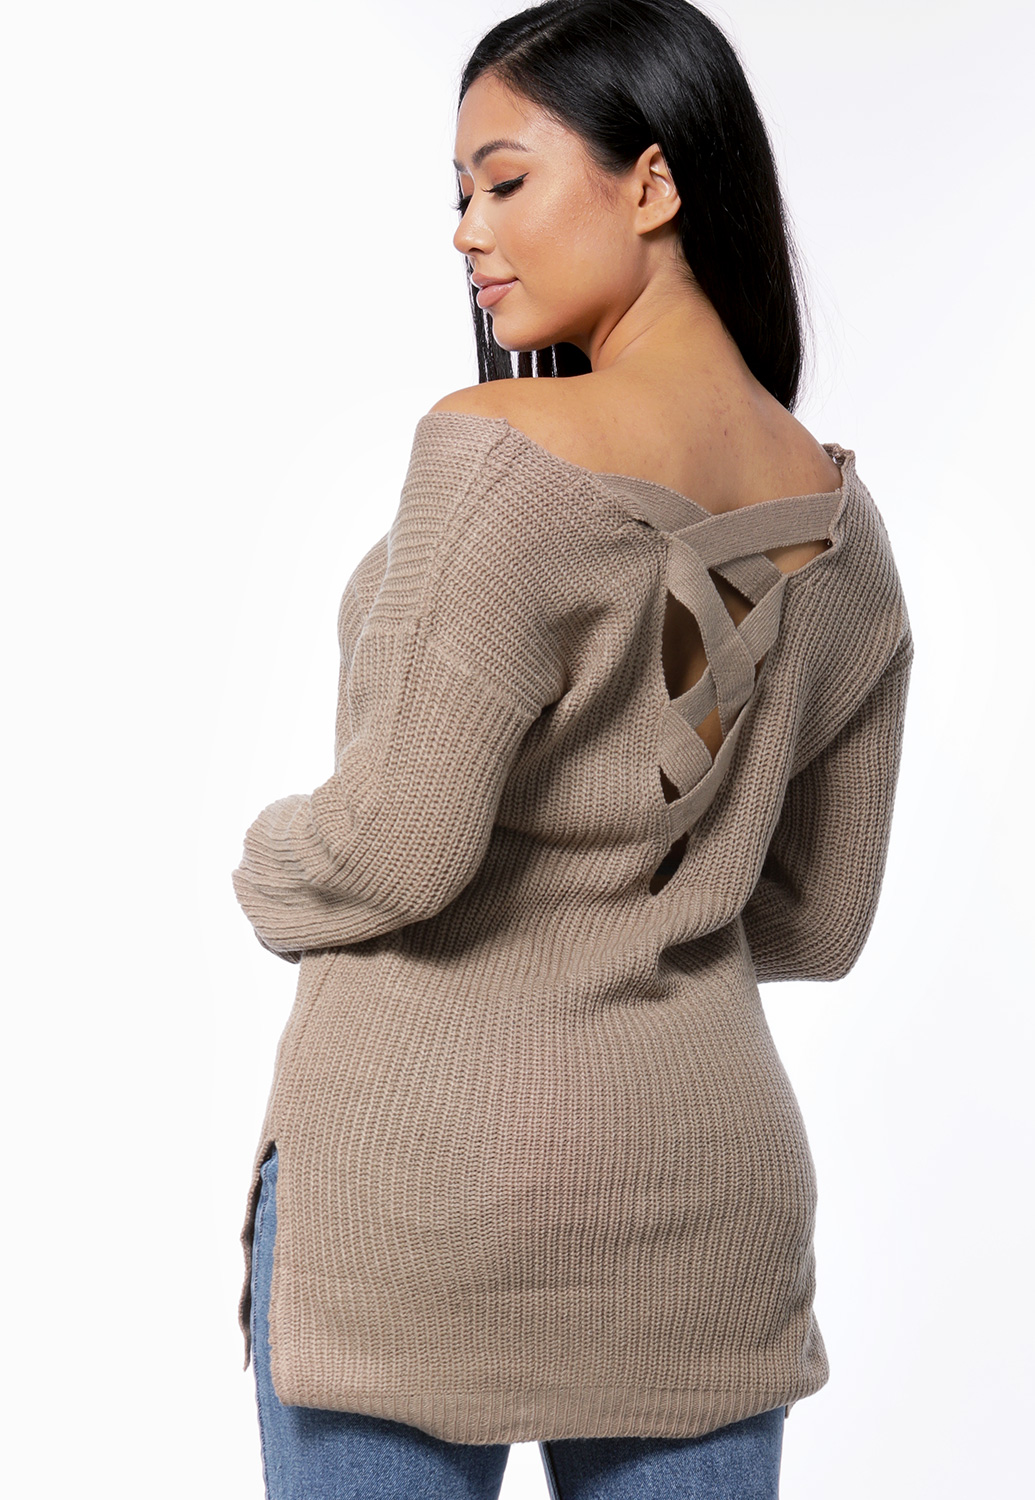 Lace-Up Back Knit Sweater